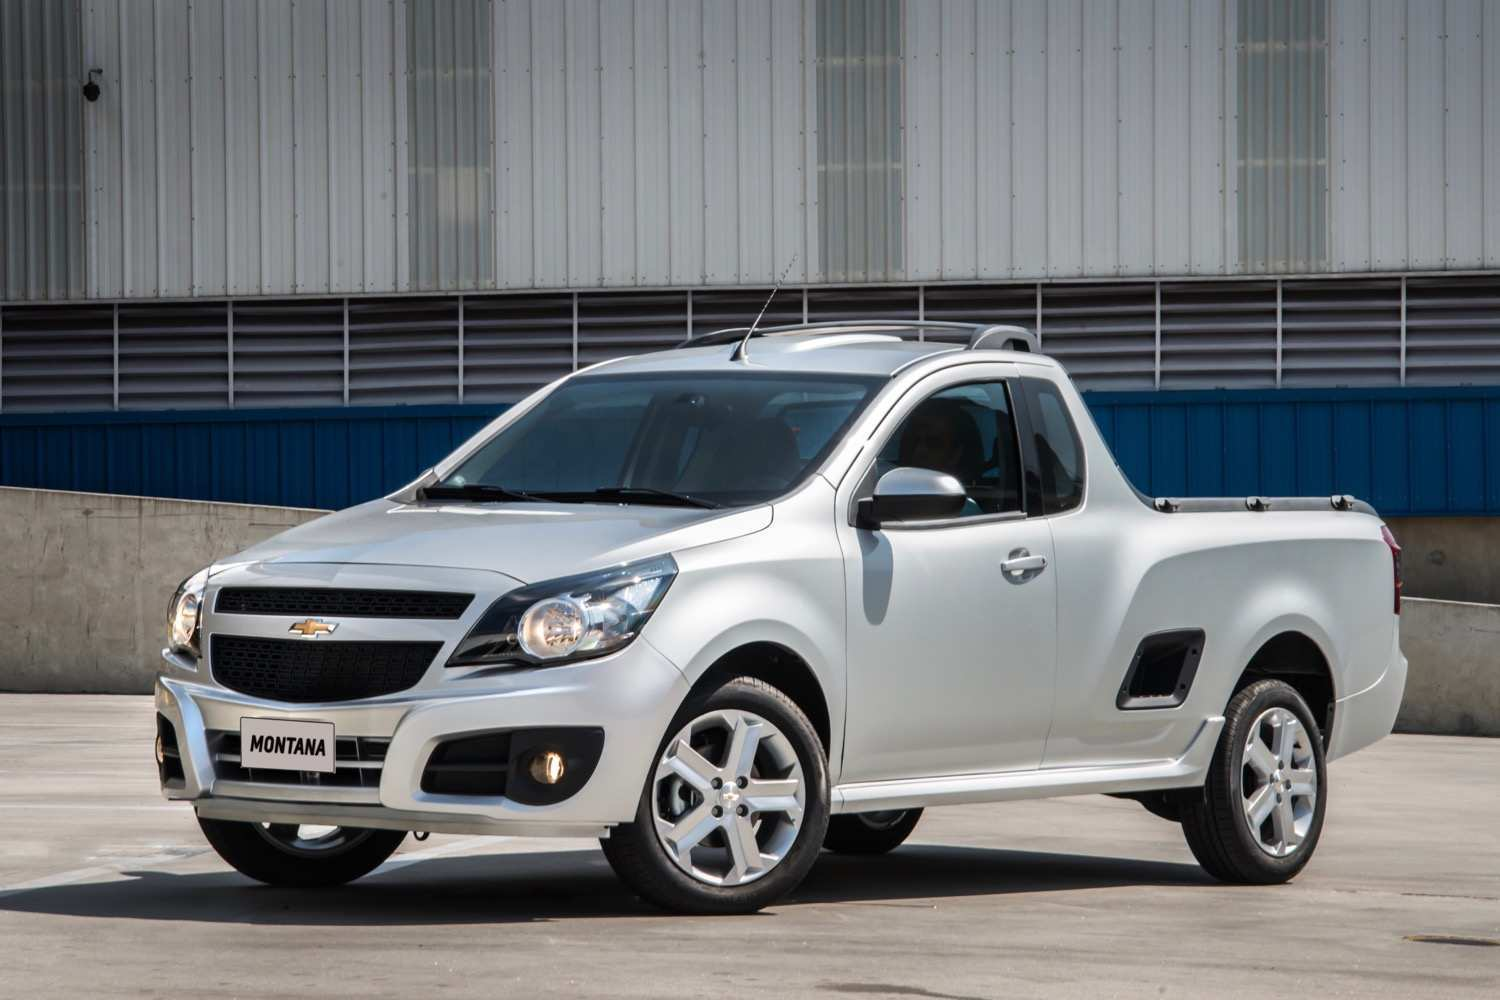 95 Best Review 2019 Chevrolet Montana Picture with 2019 Chevrolet Montana